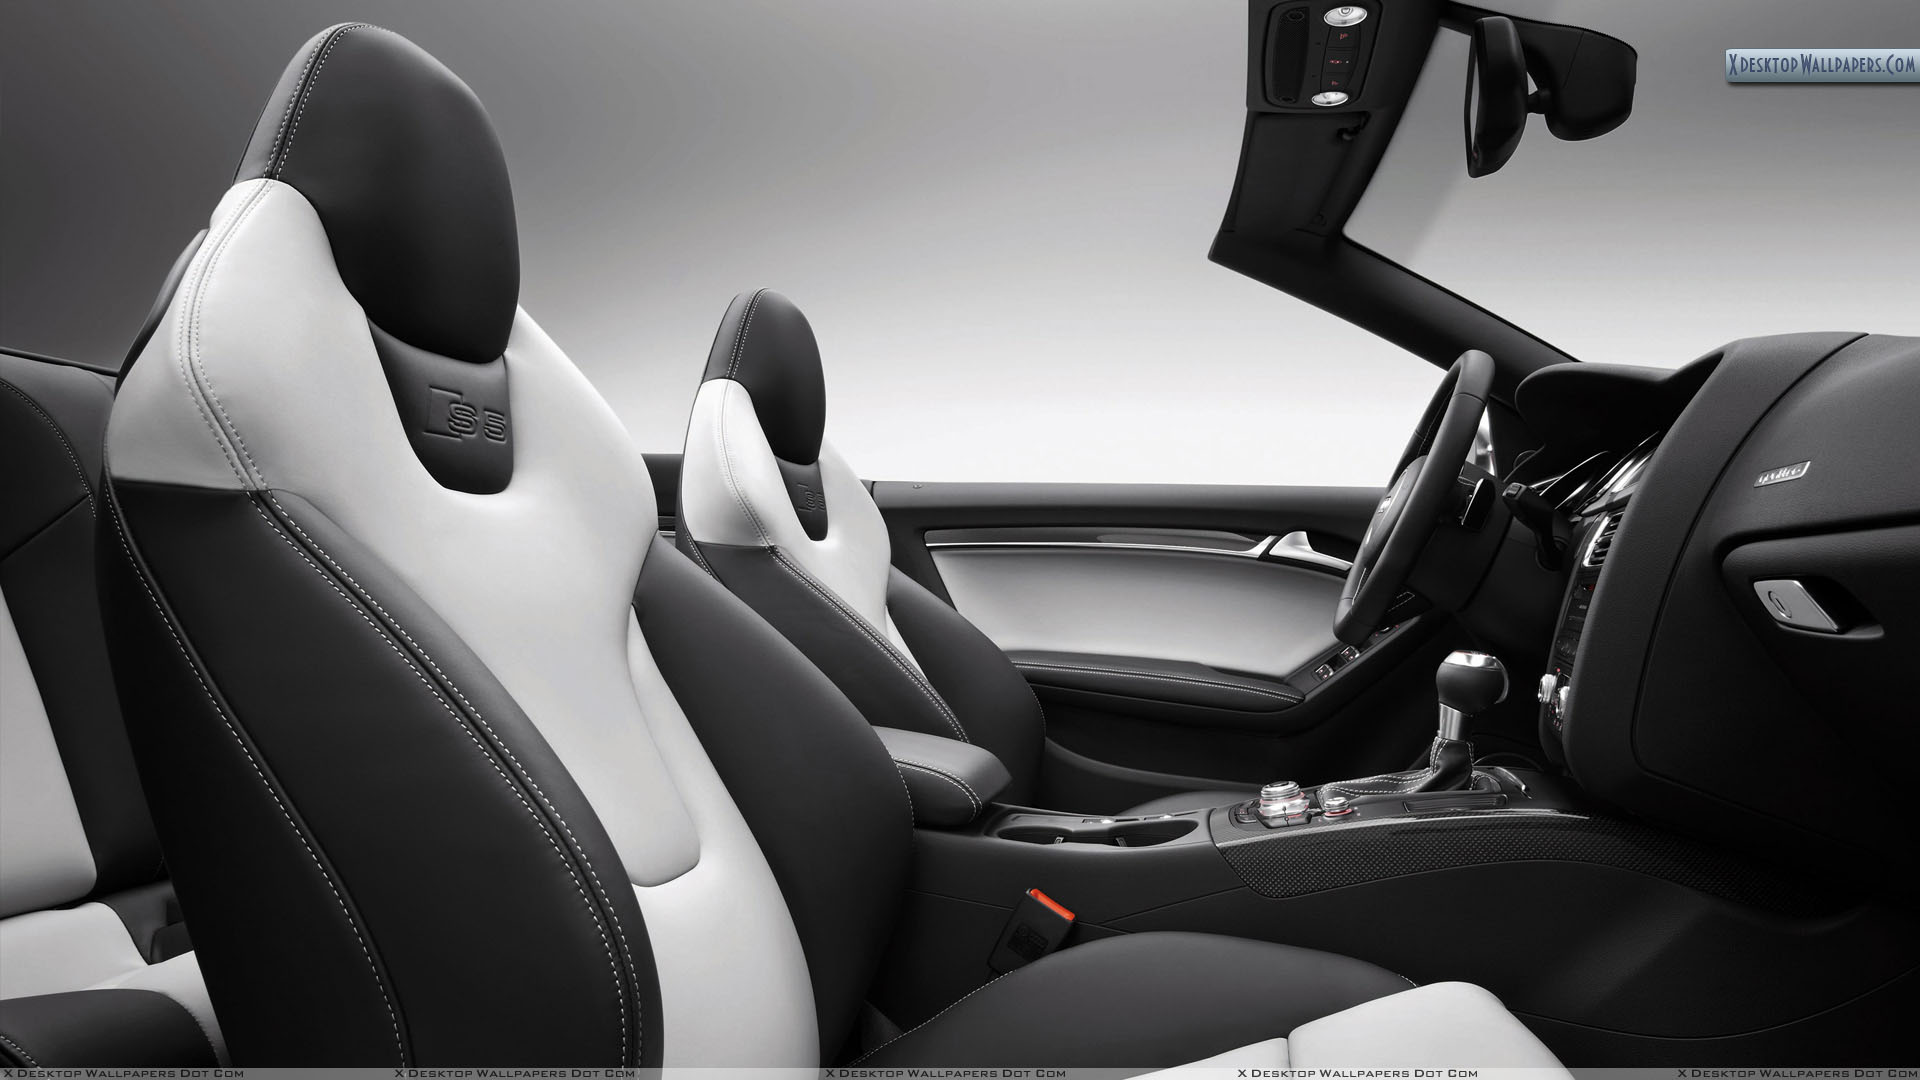 Car Seats Wallpapers Photos Images In HD